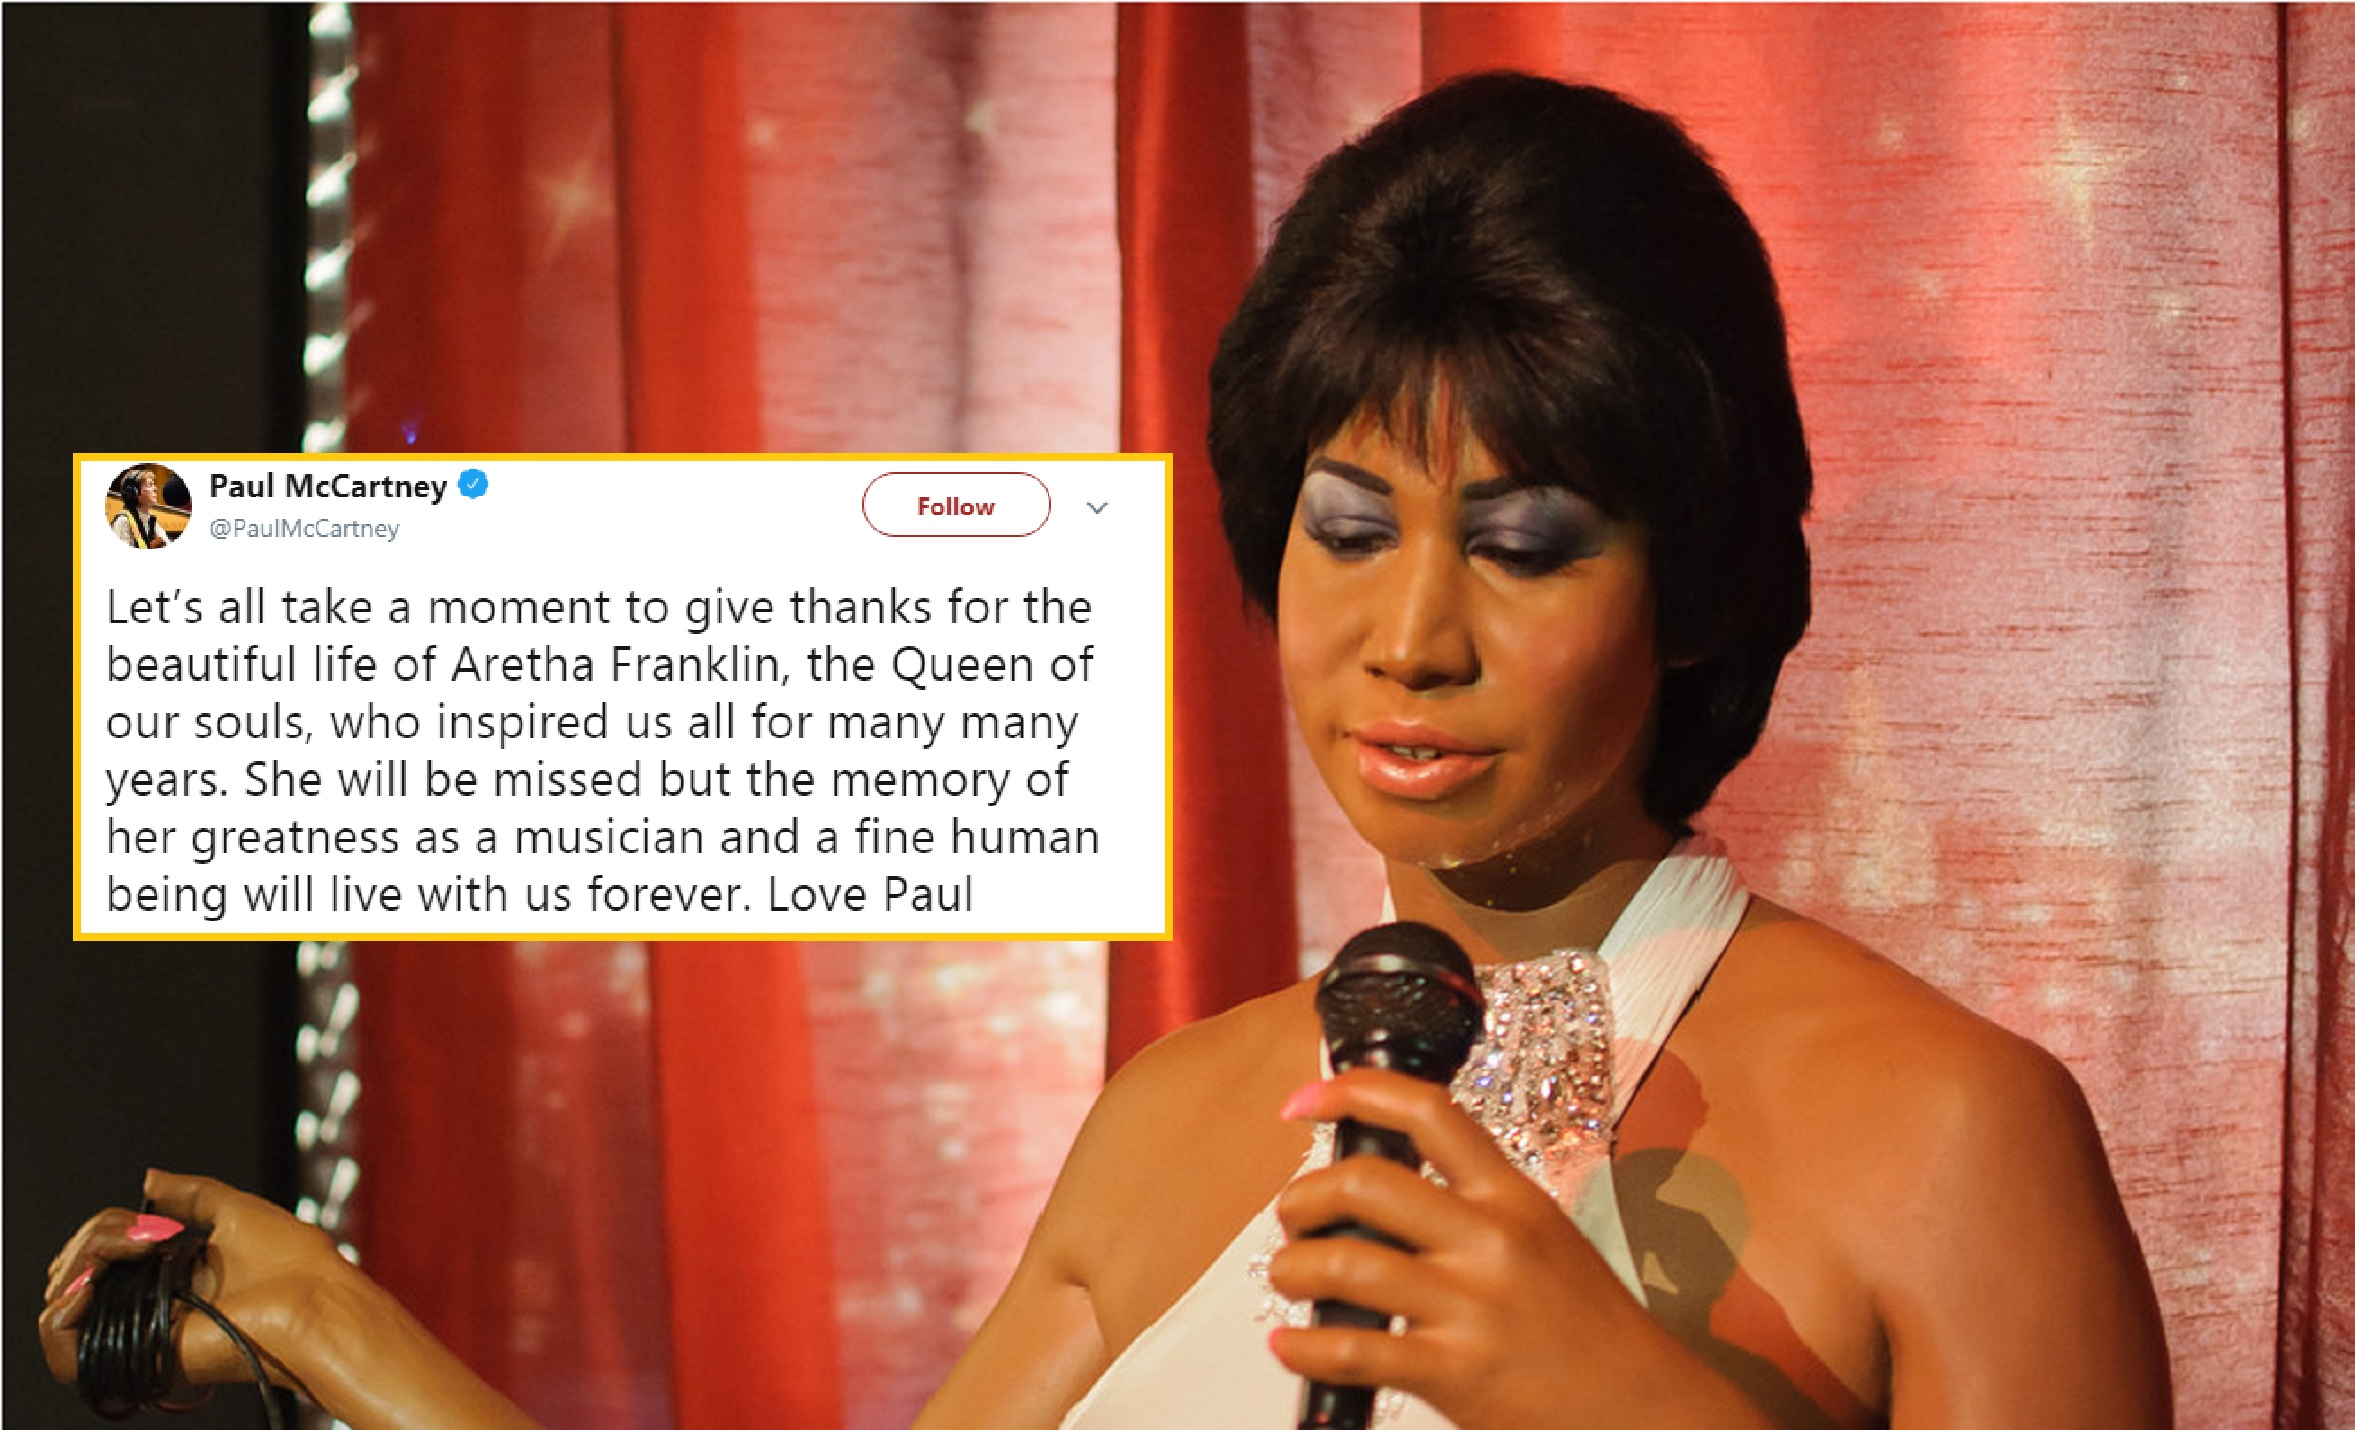 From Obama to Paul McCartney, here is how everyone reacted to Aretha Franklin's passing